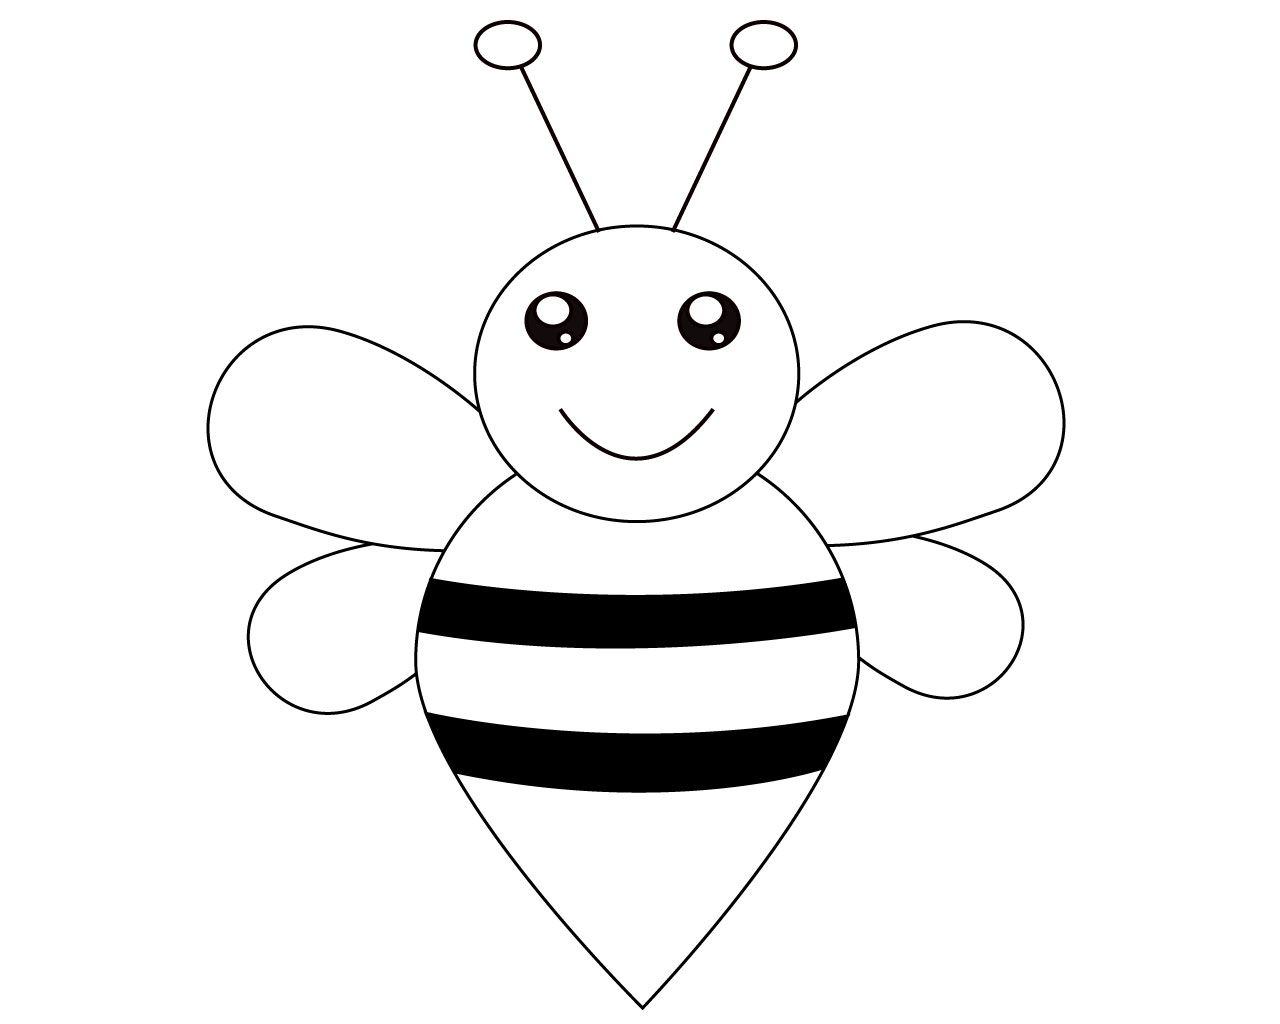 Bee Coloring Pages For Toddler Bee Coloring Pages Owl Coloring Pages Star Coloring Pages [ 1024 x 1280 Pixel ]